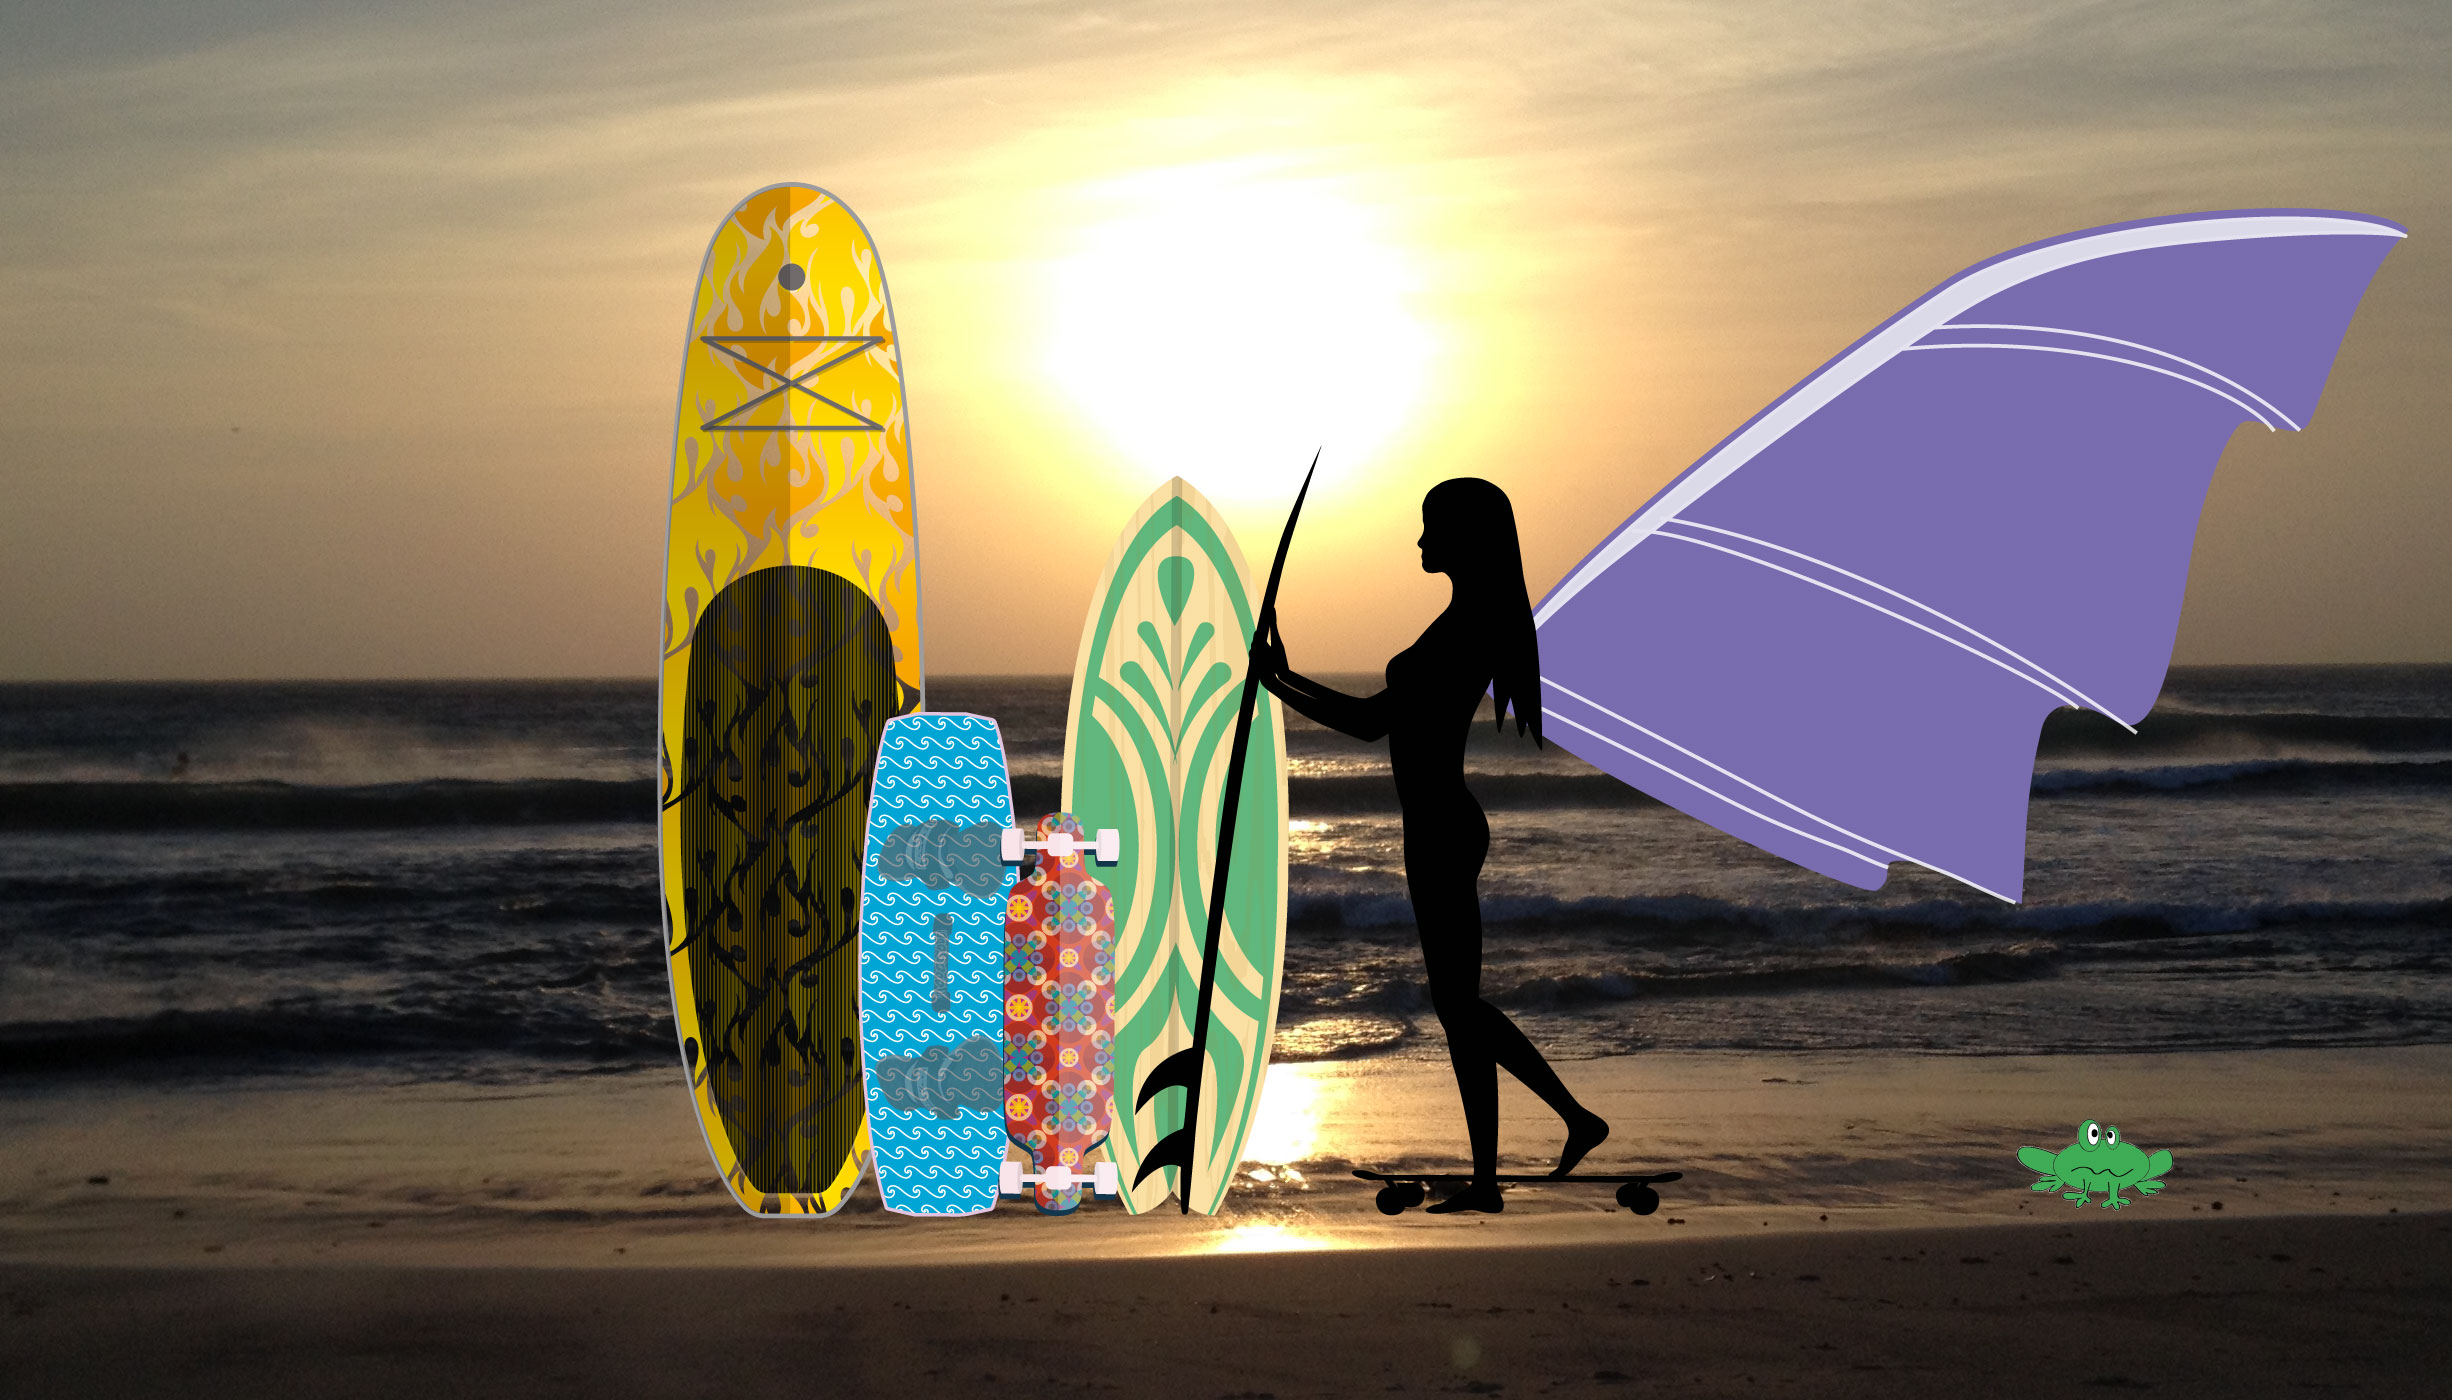 kite, surf, sup, longboard, skate, package rental, Tarifa